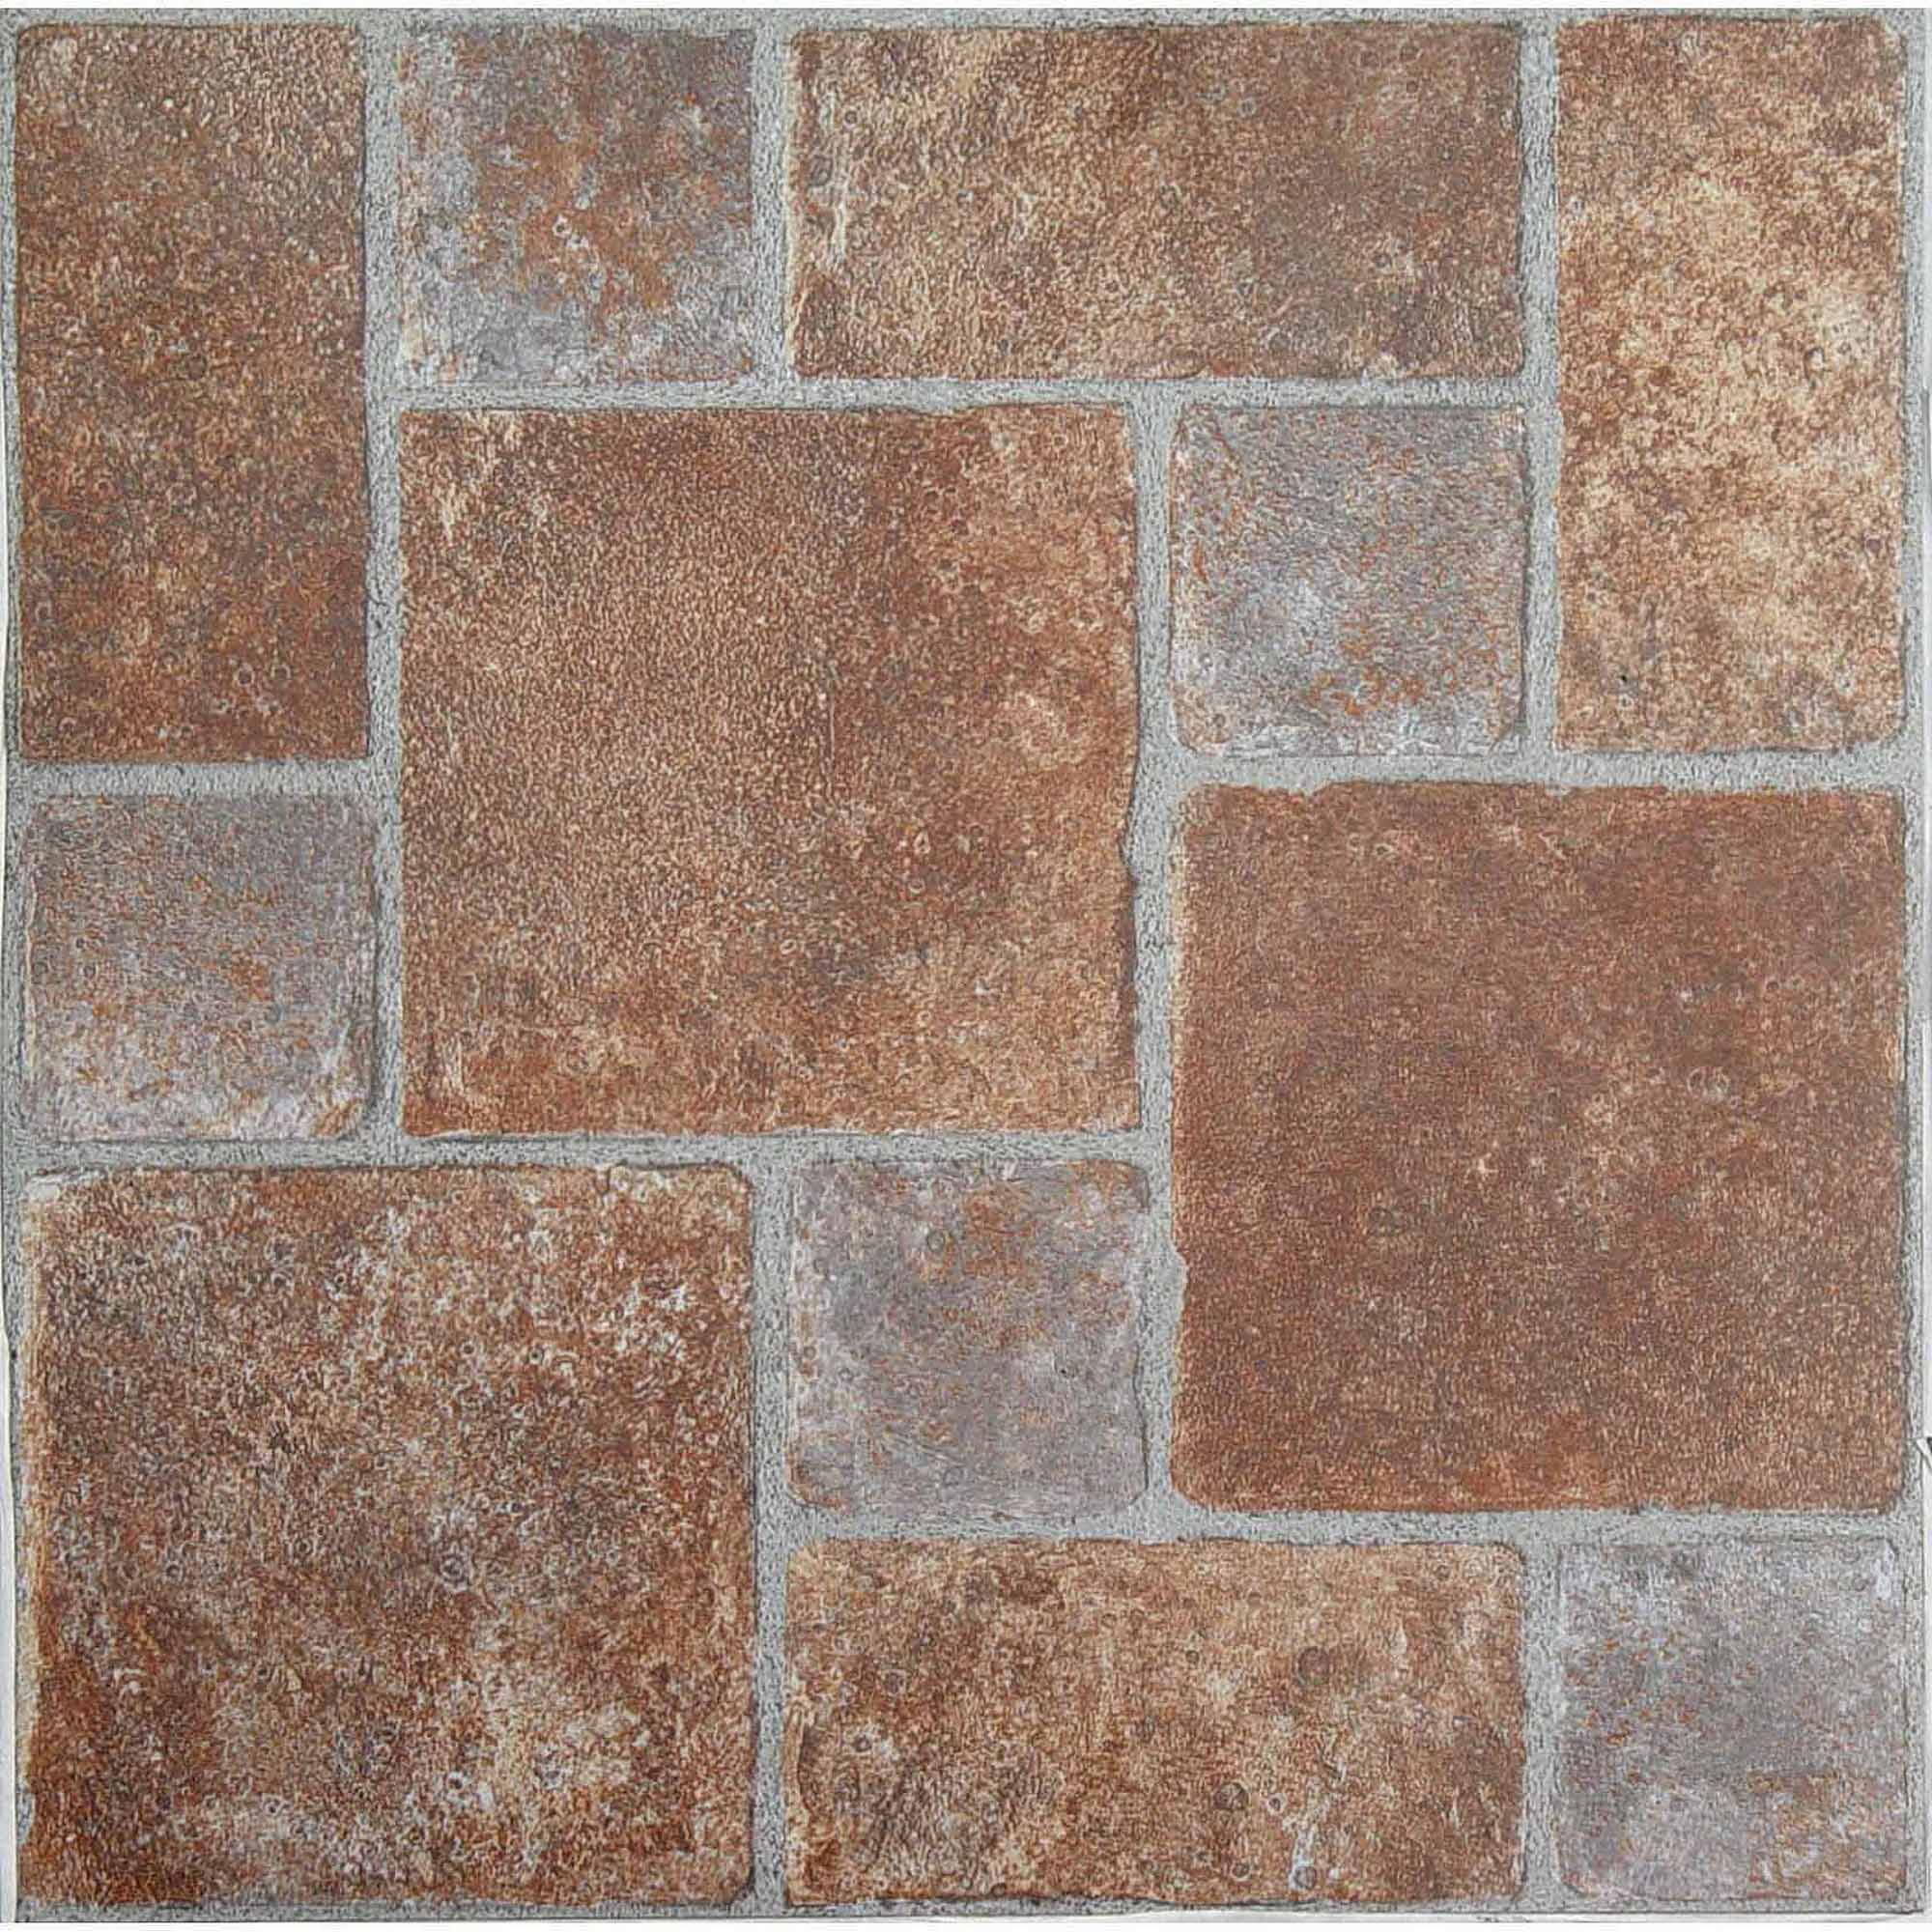 NEXUS Brick Pavers 12x12 Self Adhesive Vinyl Floor Tile 20 Tiles